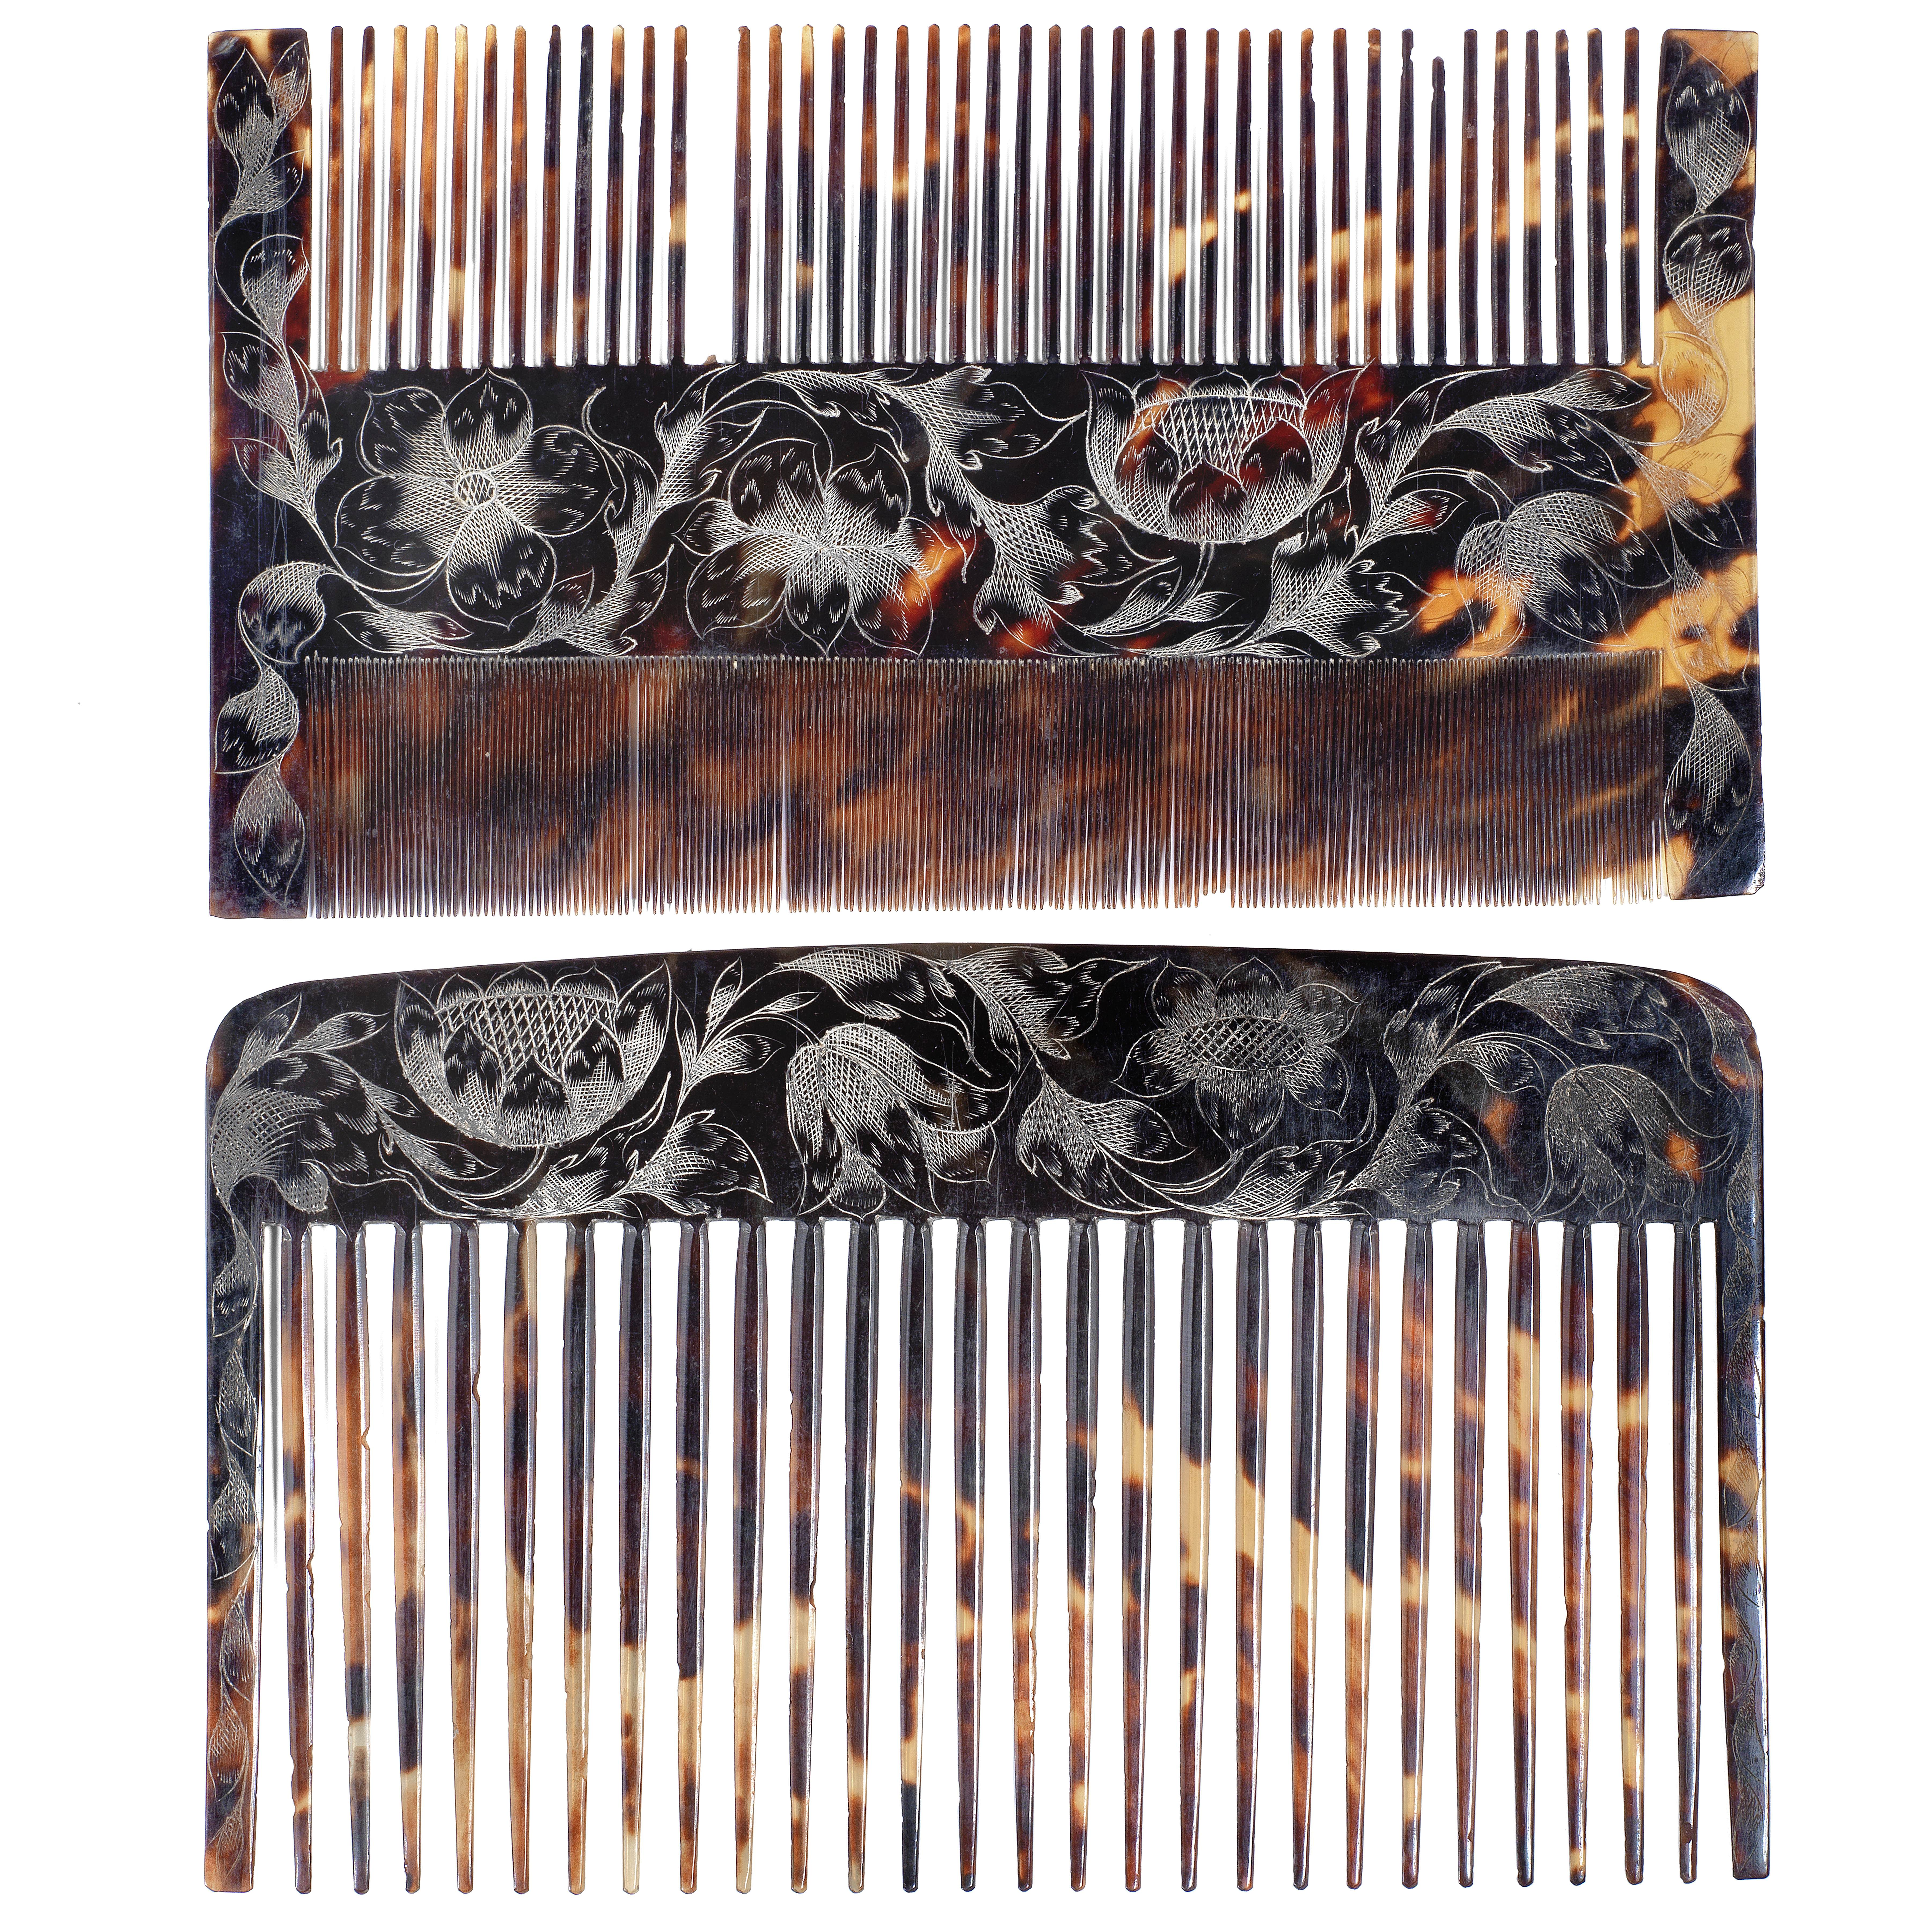 A rare late 17th century Jamaican colonial engraved tortoiseshell wig comb case containing two co...